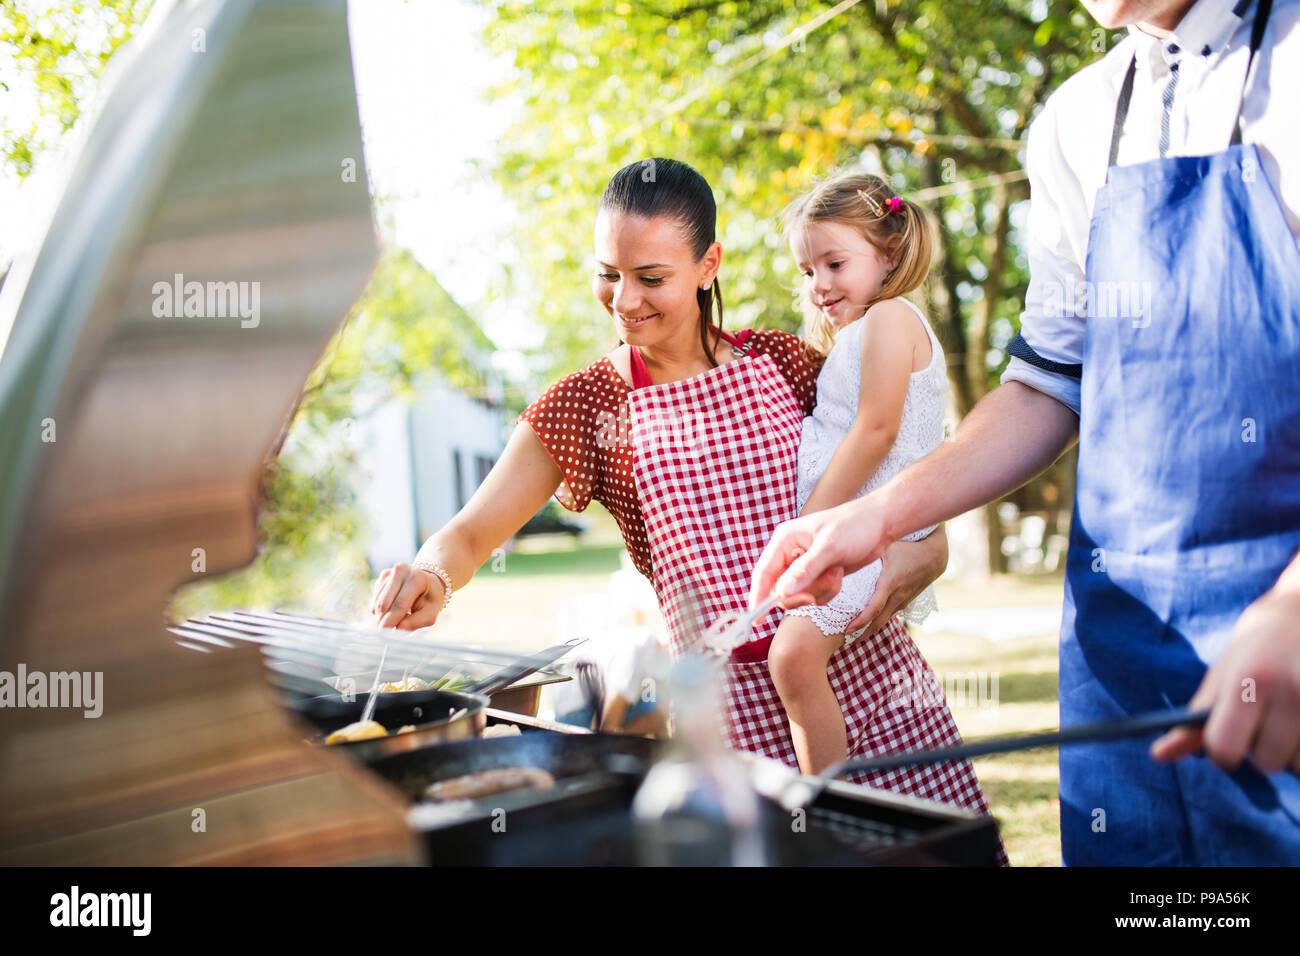 Family celebration or a barbecue party outside in the backyard. Stock Photo